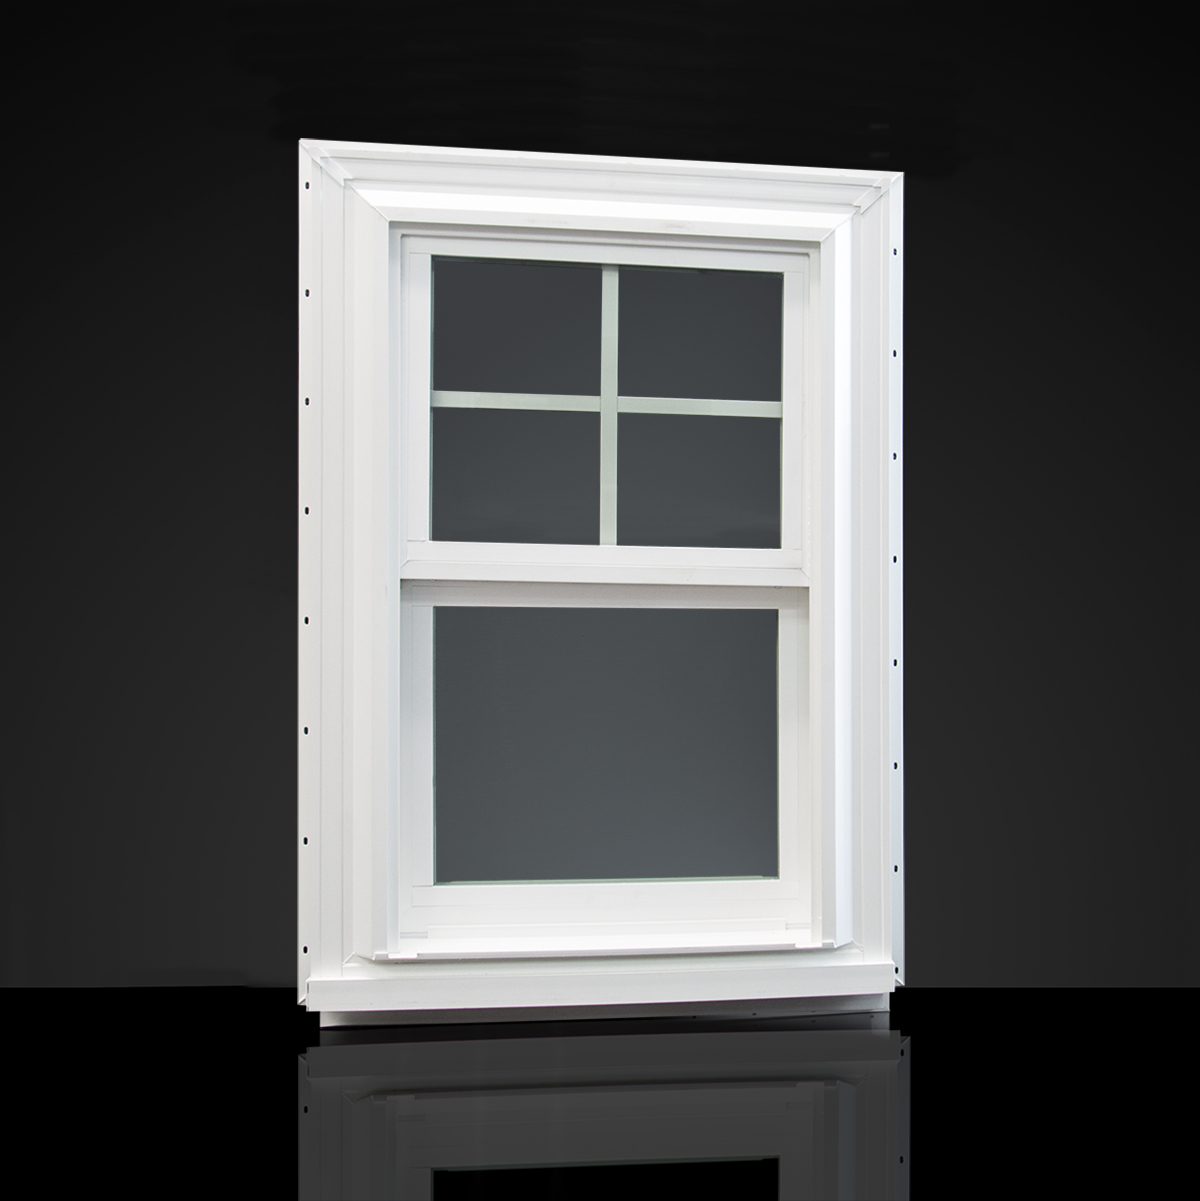 Double Hung Window | Product Information | MI Windows and Doors